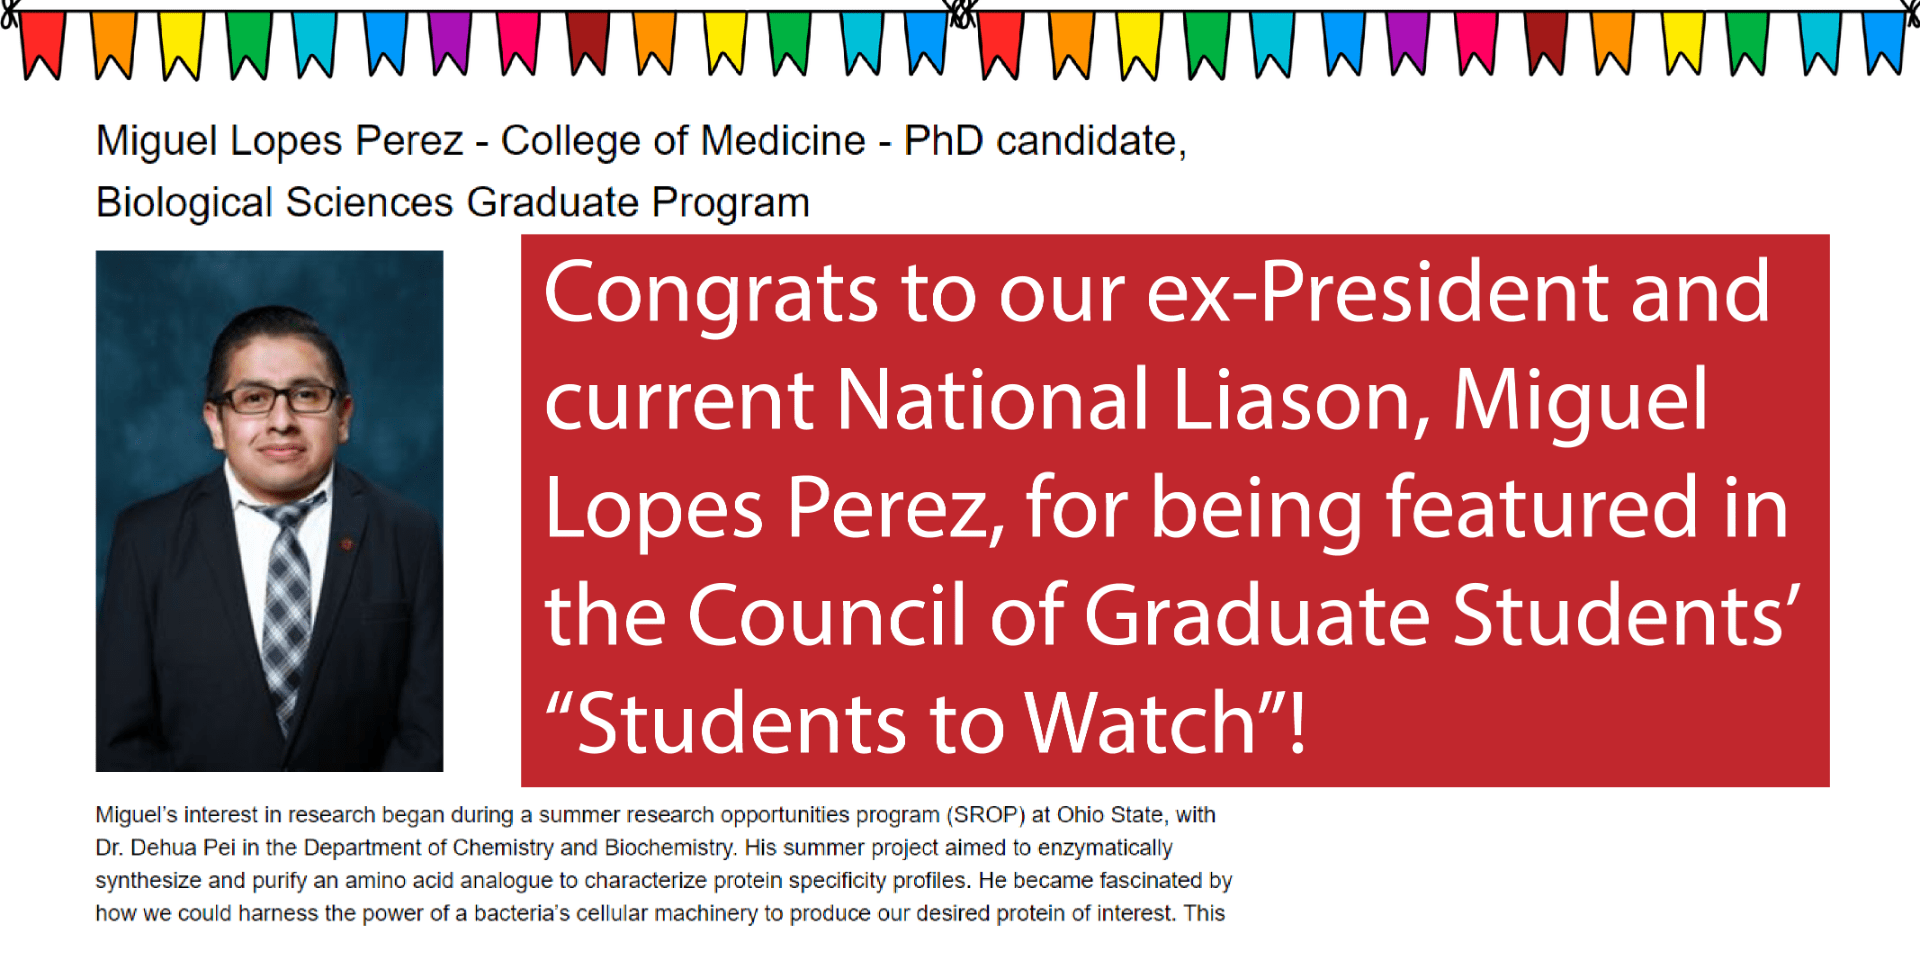 Miguel Lopes Perez was featured in the CGS' Students to Watch